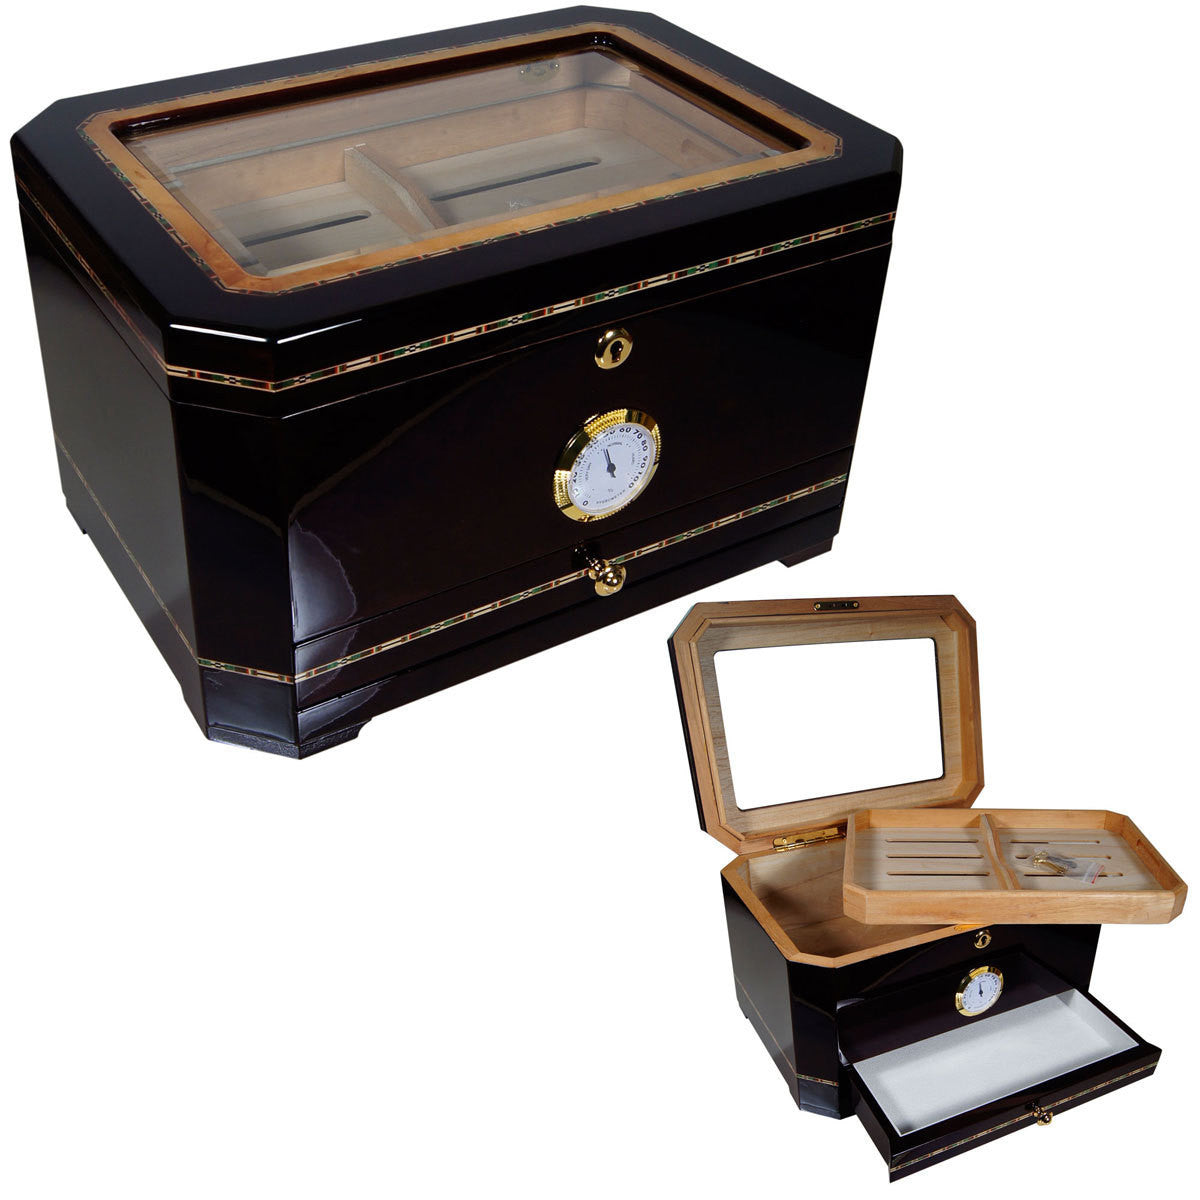 El Mirador Glass Humidor for 100 Cigars - Humidors Wholesaler